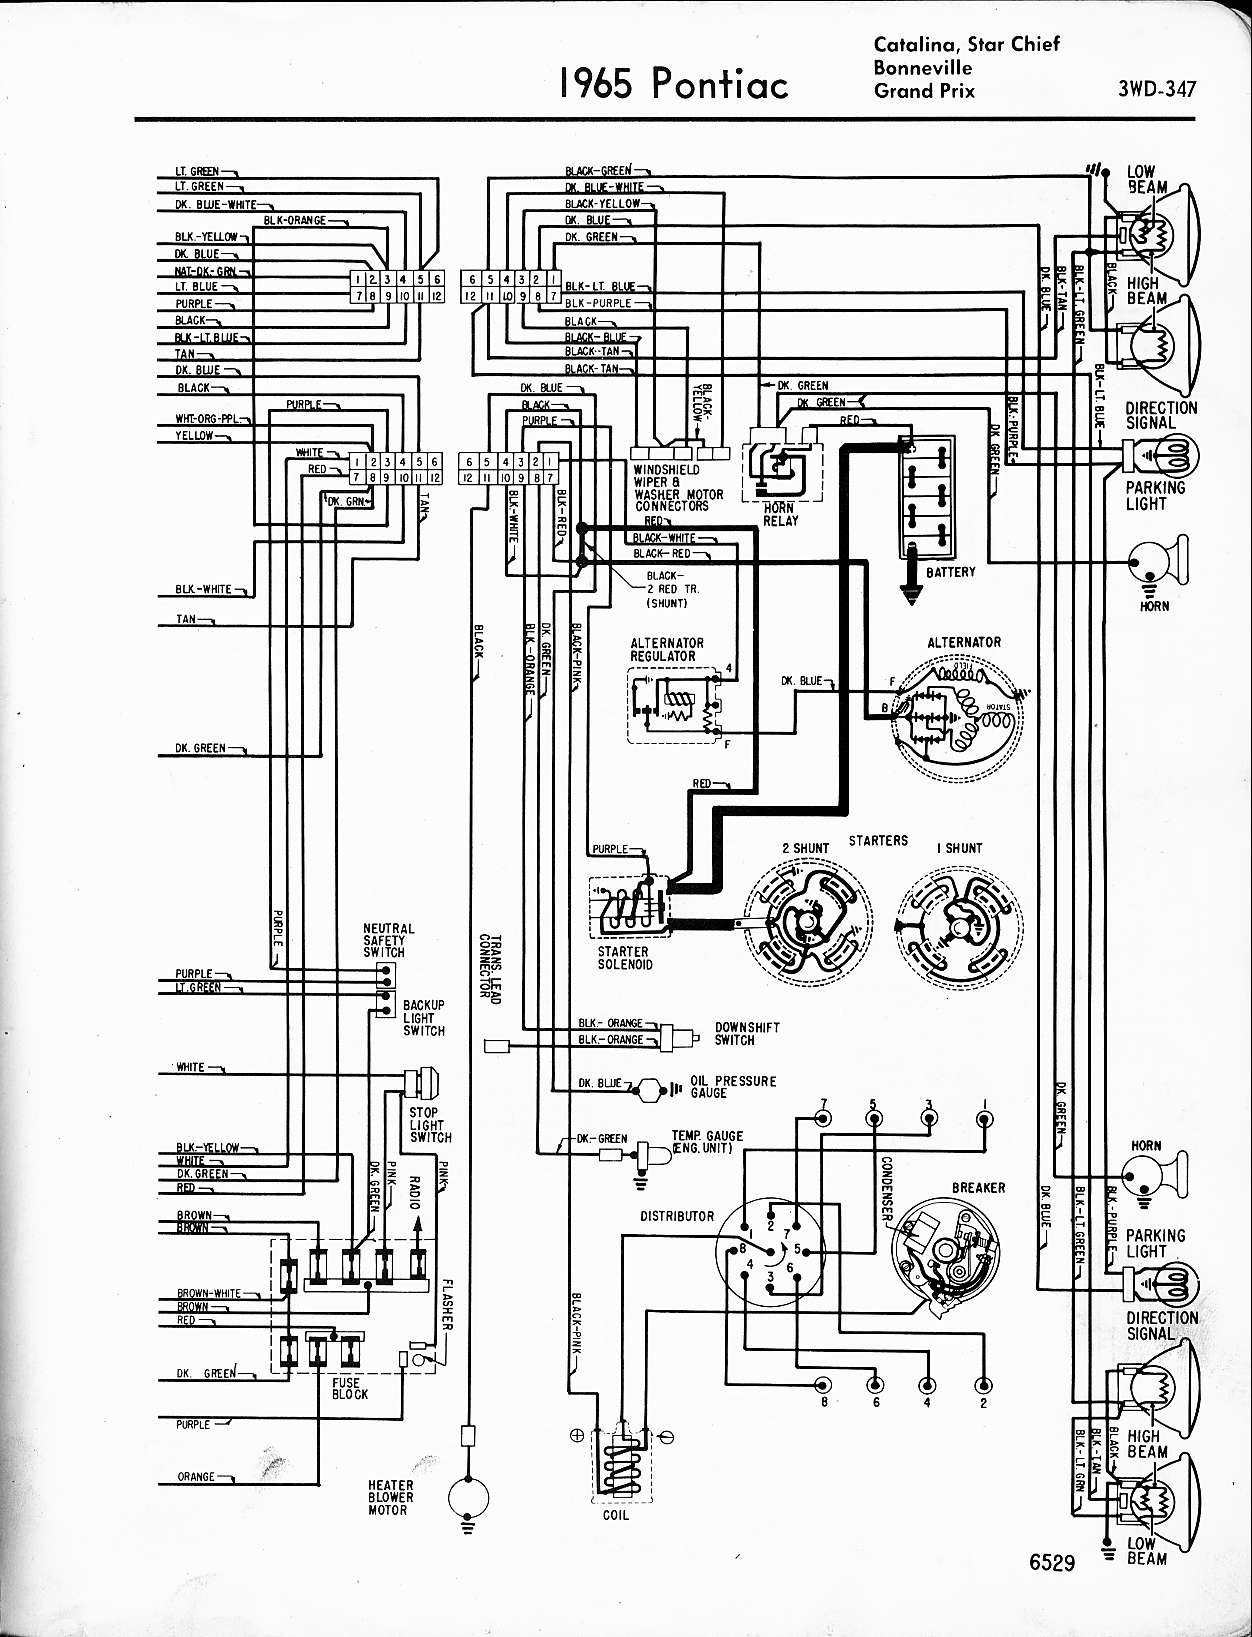 65 Gto Wiring Harness - Wiring Diagram Schematic Name  Chevelle Wiring Diagram Key on 1970 chevelle air cleaner, 1970 chevelle alternator, 1967 chevelle horn diagram, 1970 chevelle clock, 1970 chevelle lights, 1970 chevelle neutral safety switch, 1970 chevelle crankshaft, 1970 chevelle cowl induction relay location, 1970 chevelle carburetor, 1970 chevelle oil sending unit, 1970 chevelle air conditioning, 1970 chevelle tires, 1970 chevelle wiring blueprints, 1970 chevelle fuel gauge wiring, 1970 chevelle transmission, 1970 chevelle schematics, 1970 chevelle ss fender emblem location, 1970 chevelle wiring harness, chevelle ac diagram, 67 chevelle horn diagram,